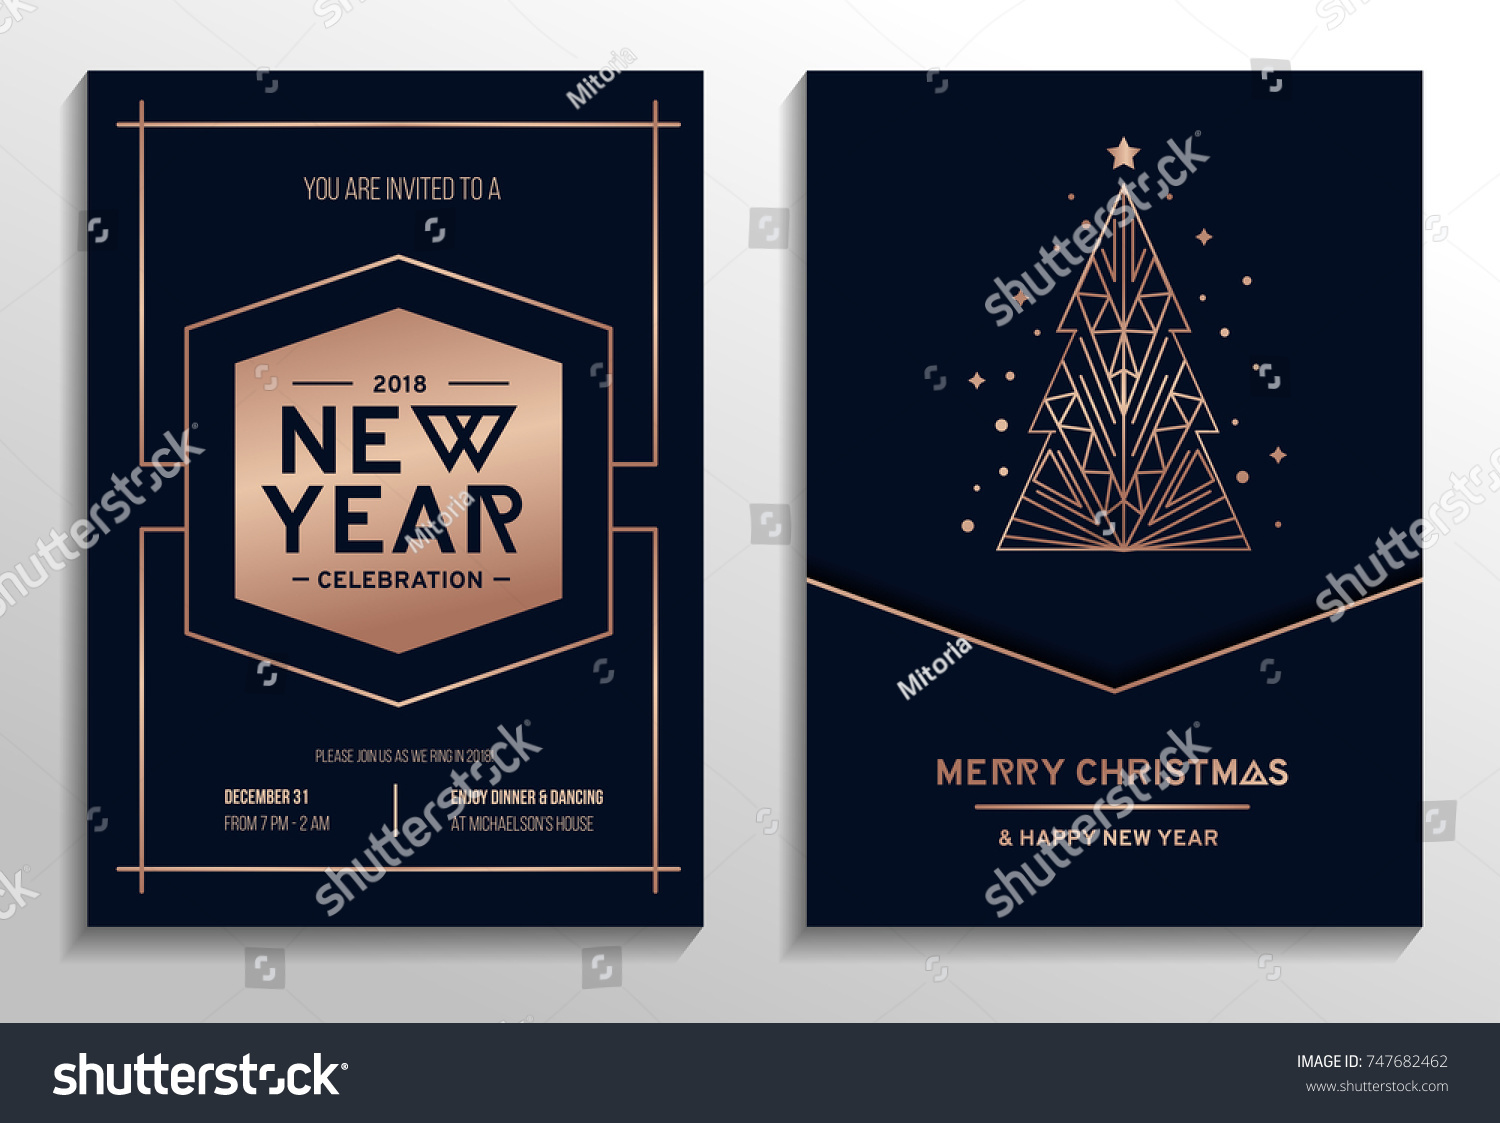 New year party rose gold invitation. Geometric christmas design with rose gold tree. New year greeting card. Vector illustration #747682462